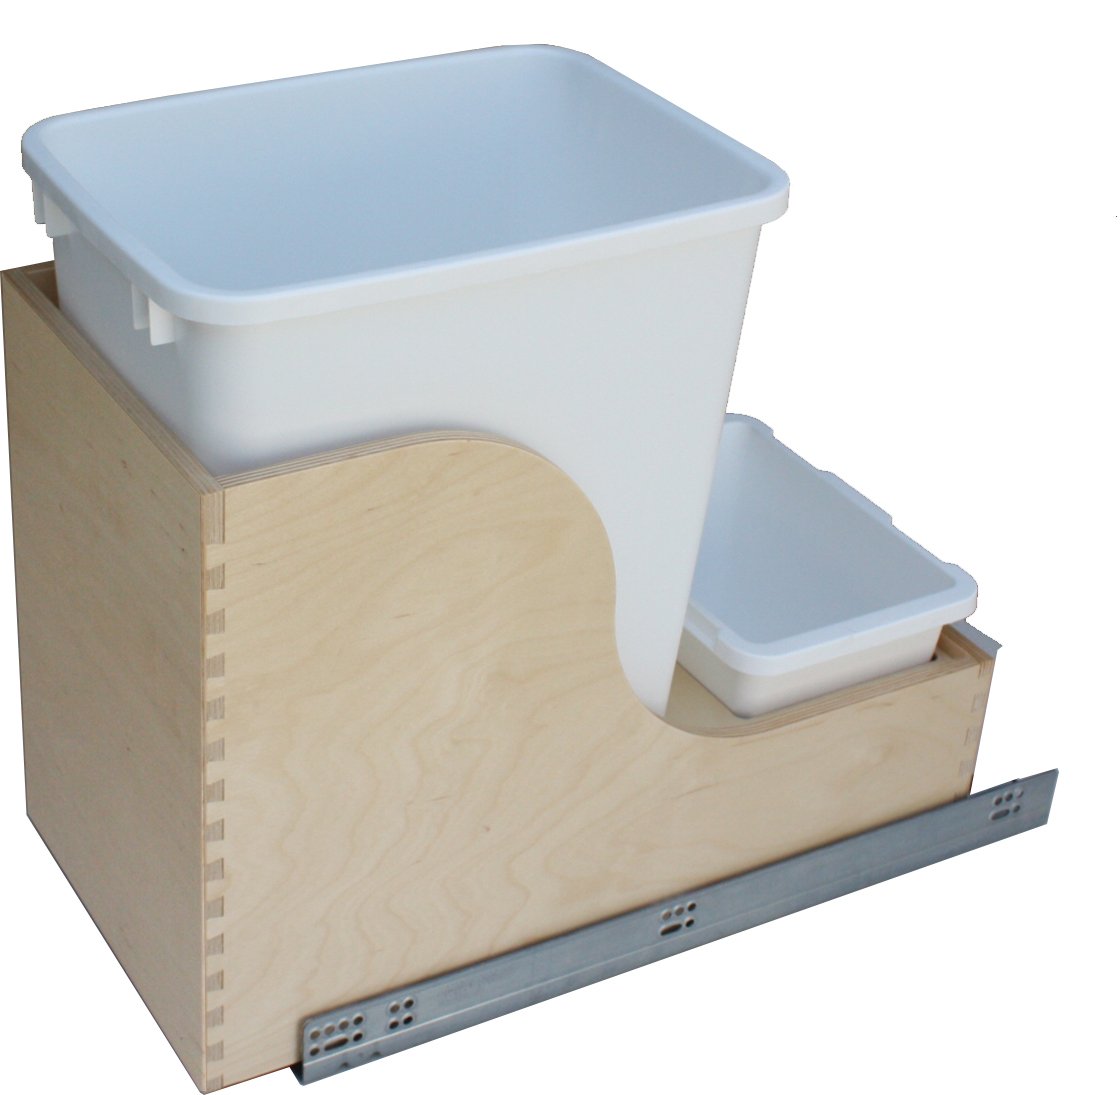 Single 35qt Waste Container with Undermount Slides (Soft)